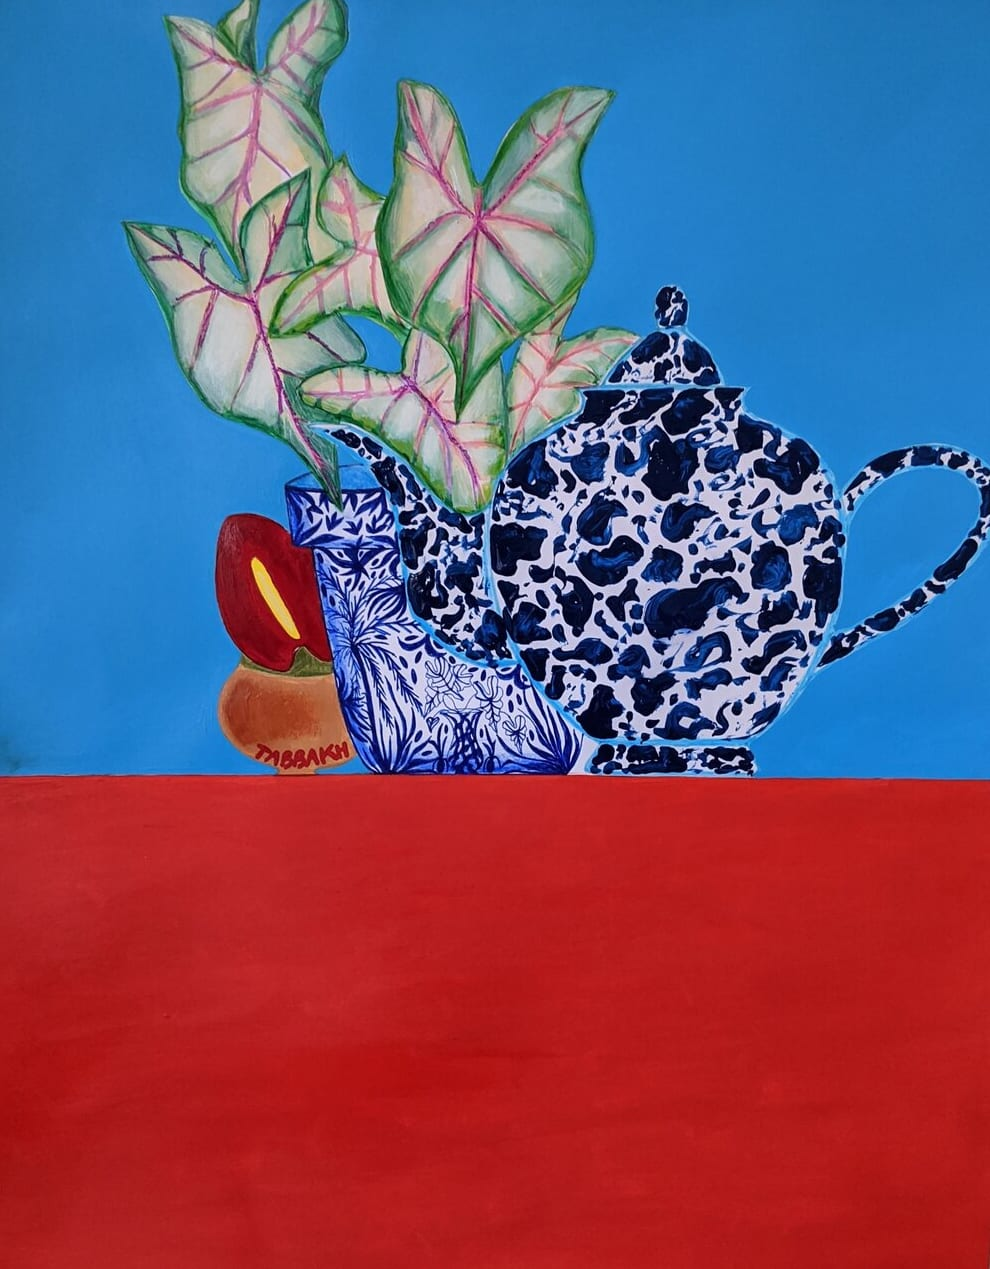 Cathy Tabbakh Teapot, Plant Pot and Little Pot, 2020 Ink, Acrylic and Oil Pastels on Canvas 45 x 60 cm 17 3/4 x 23 5/8 in